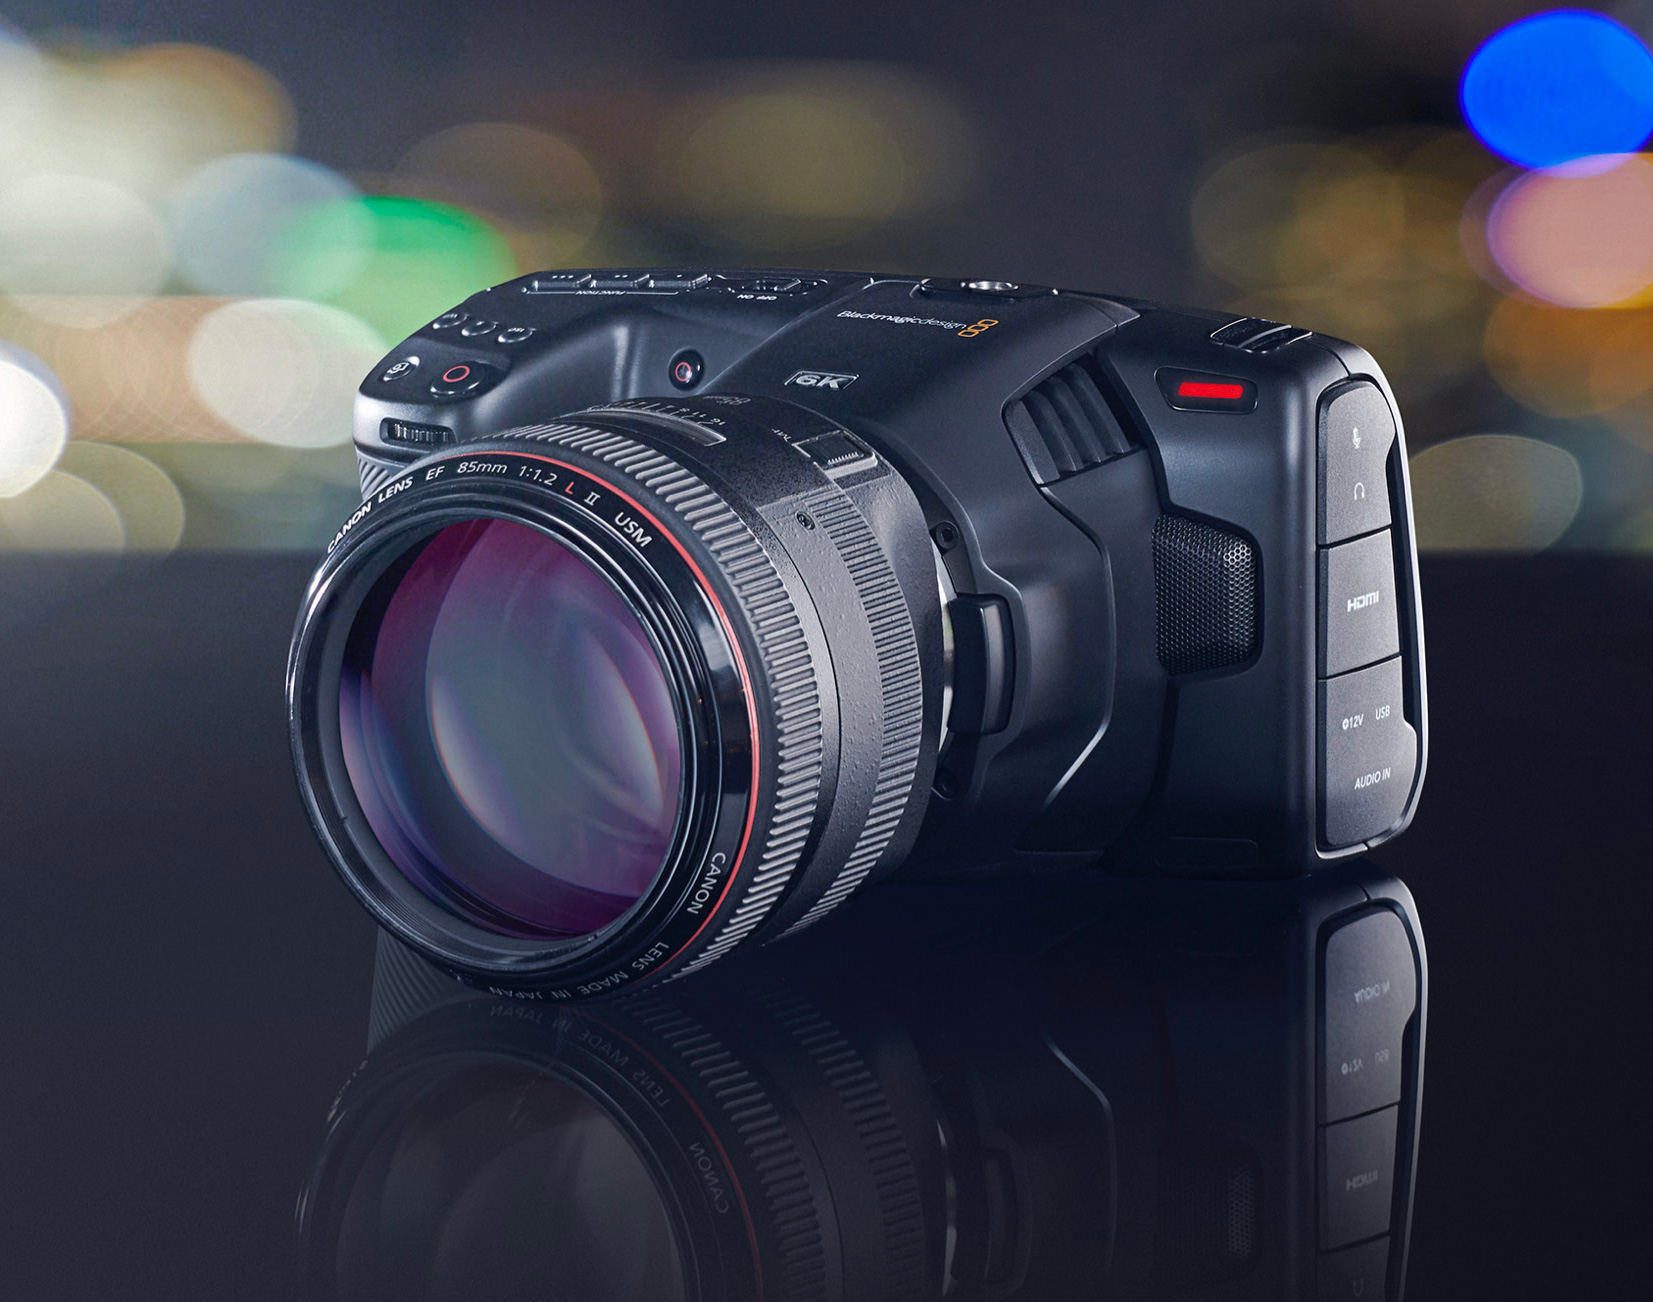 Blackmagic's New 6K Pocket Cinema Camera is a Pint-Size Powerhouse at werd.com